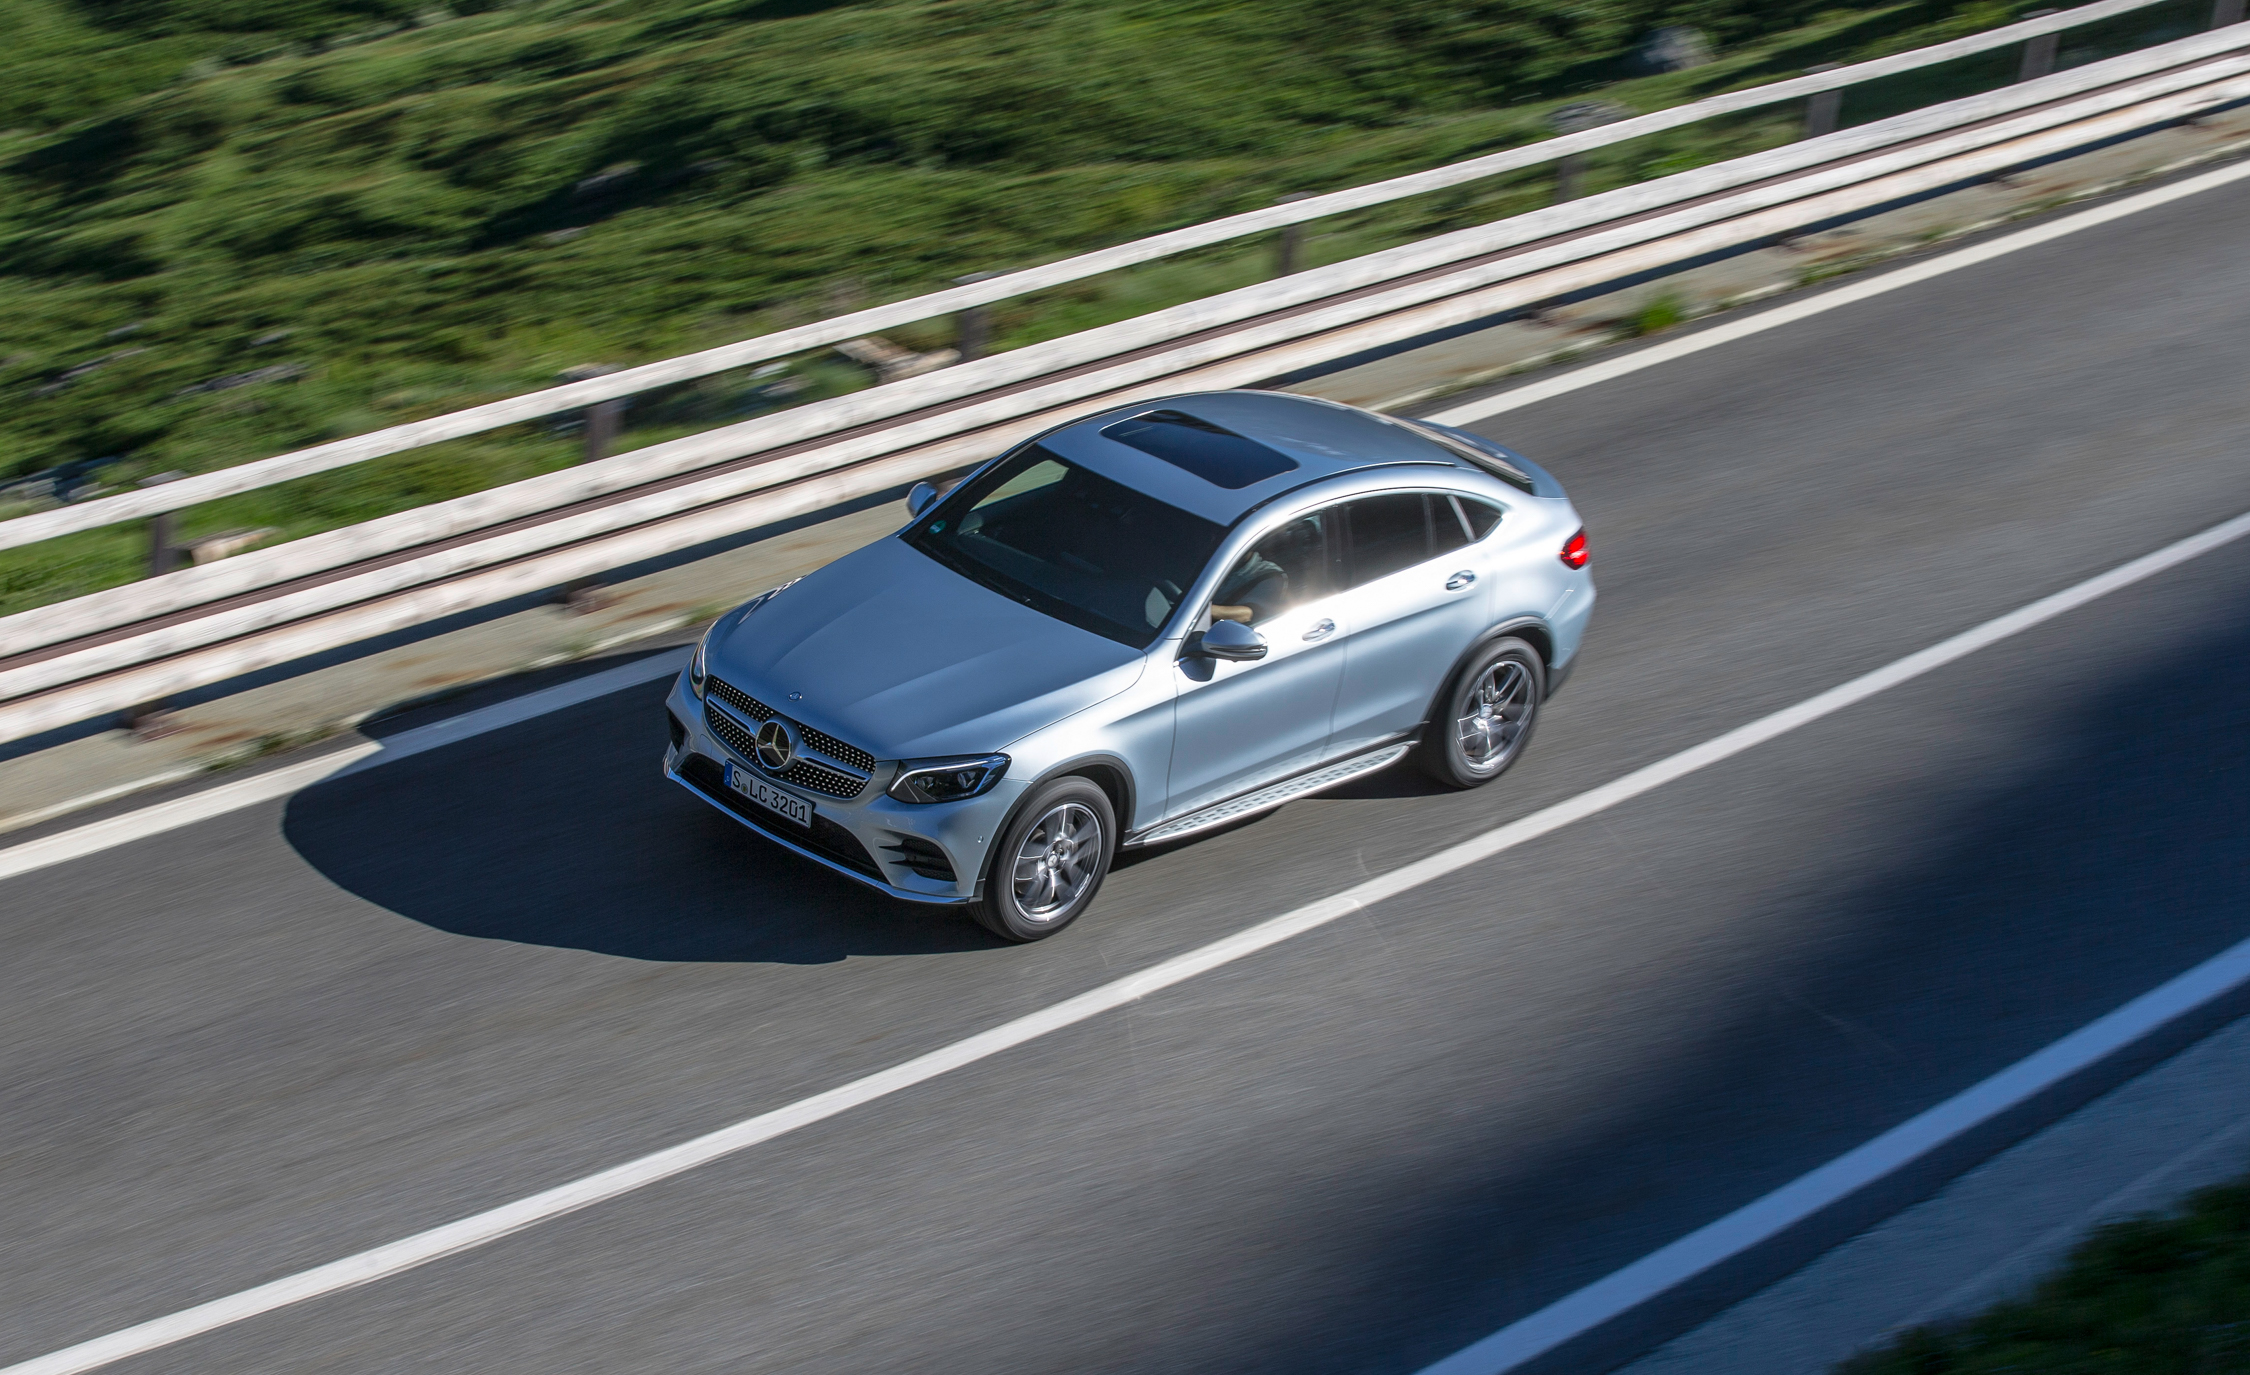 2017 Mercedes Benz GLC300 4MATIC Coupe (Photo 6 of 19)